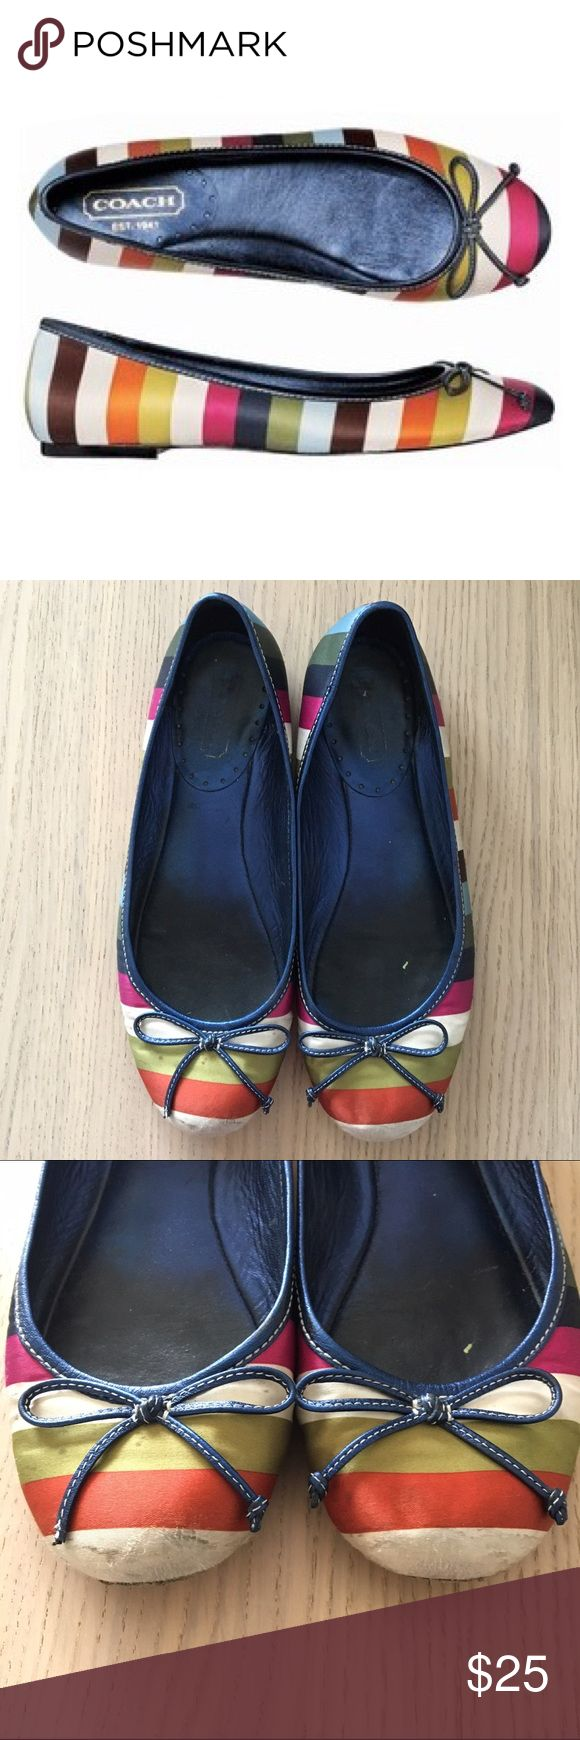 Coach Legacy Flats Pre Loved Coach Legacy satin striped flats in size 6.5. Pictures show very accurate indication of wear. Pricing reflects condition.  Lots of life left! Coach Shoes Flats & Loafers